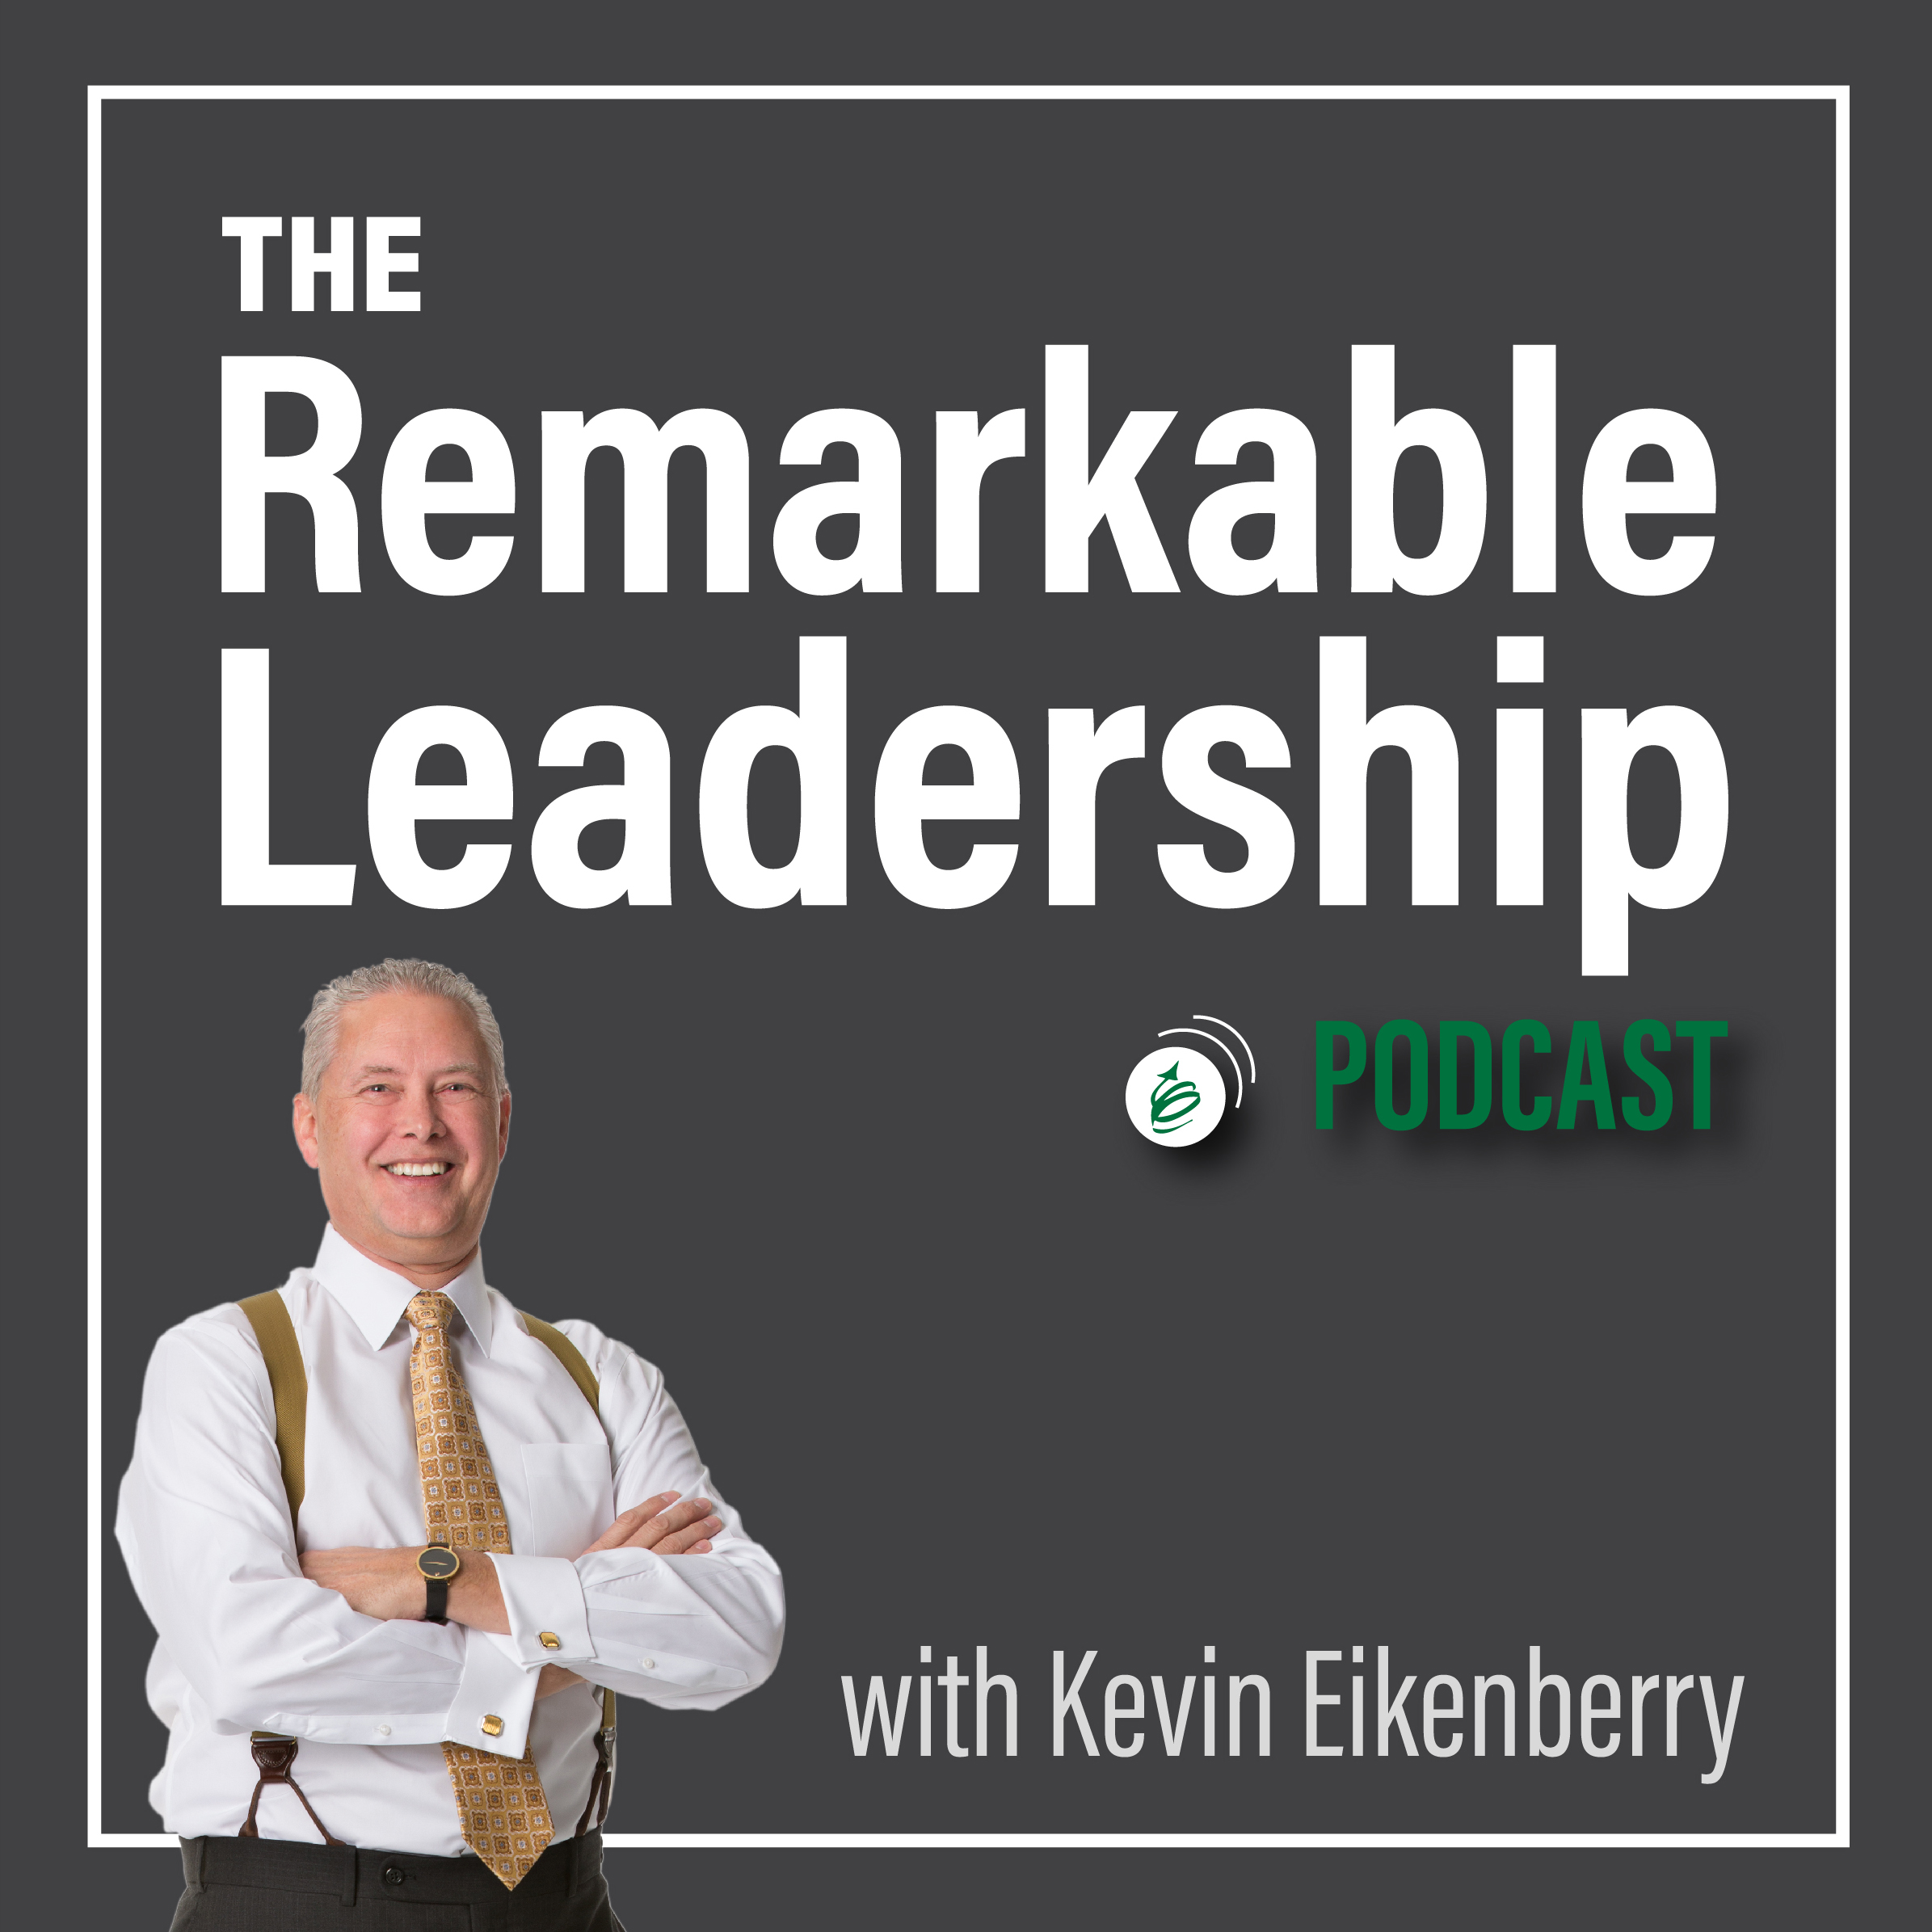 The Remarkable Leadership Podcast